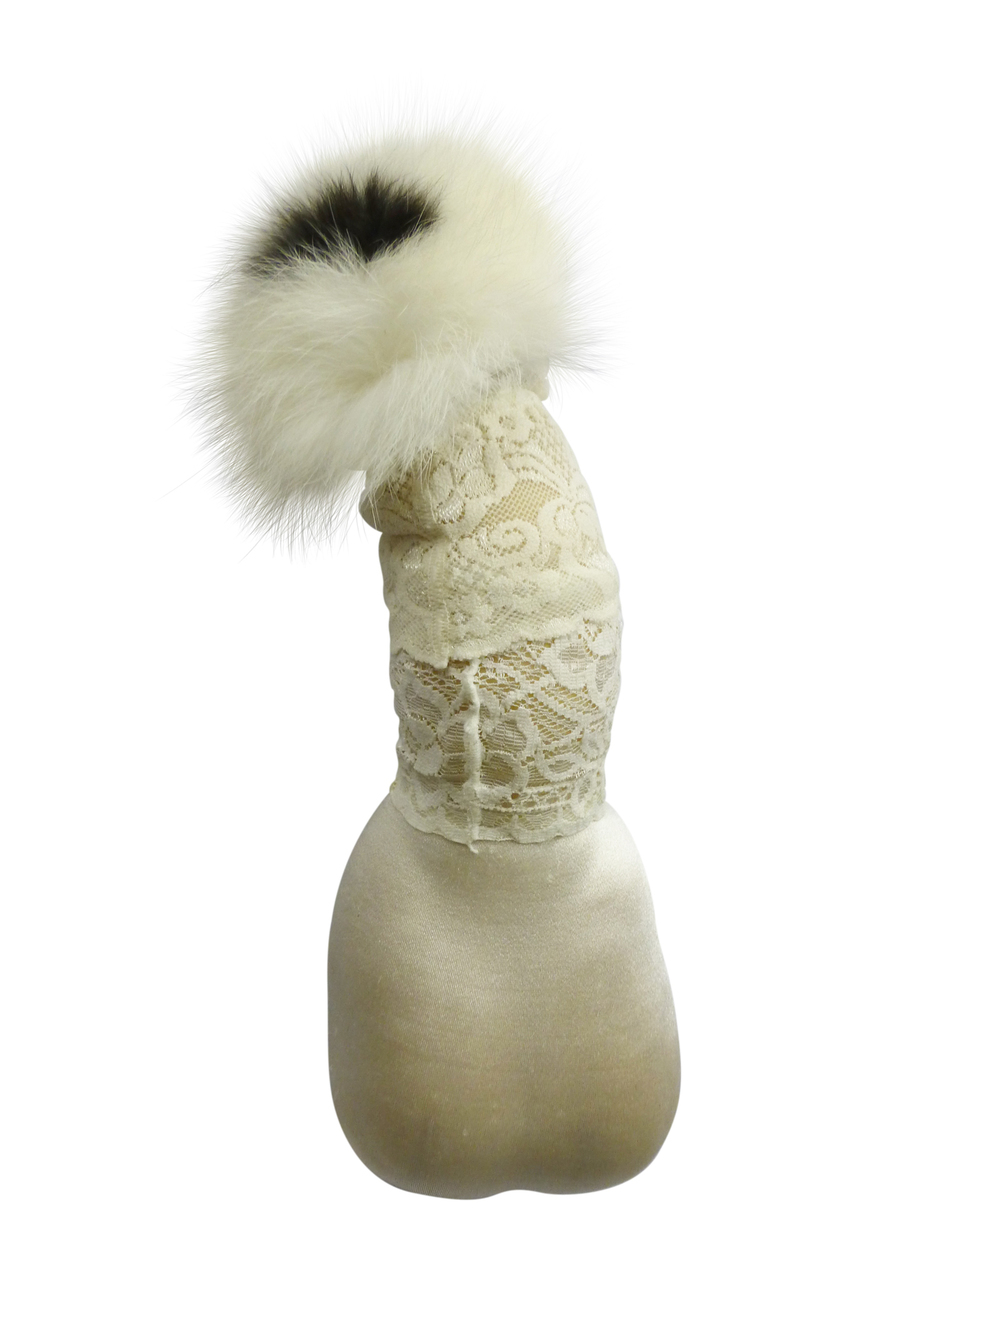 Nr.4,  Nylons, sheep`s wool, rabbit fur, 27x6x6 cm